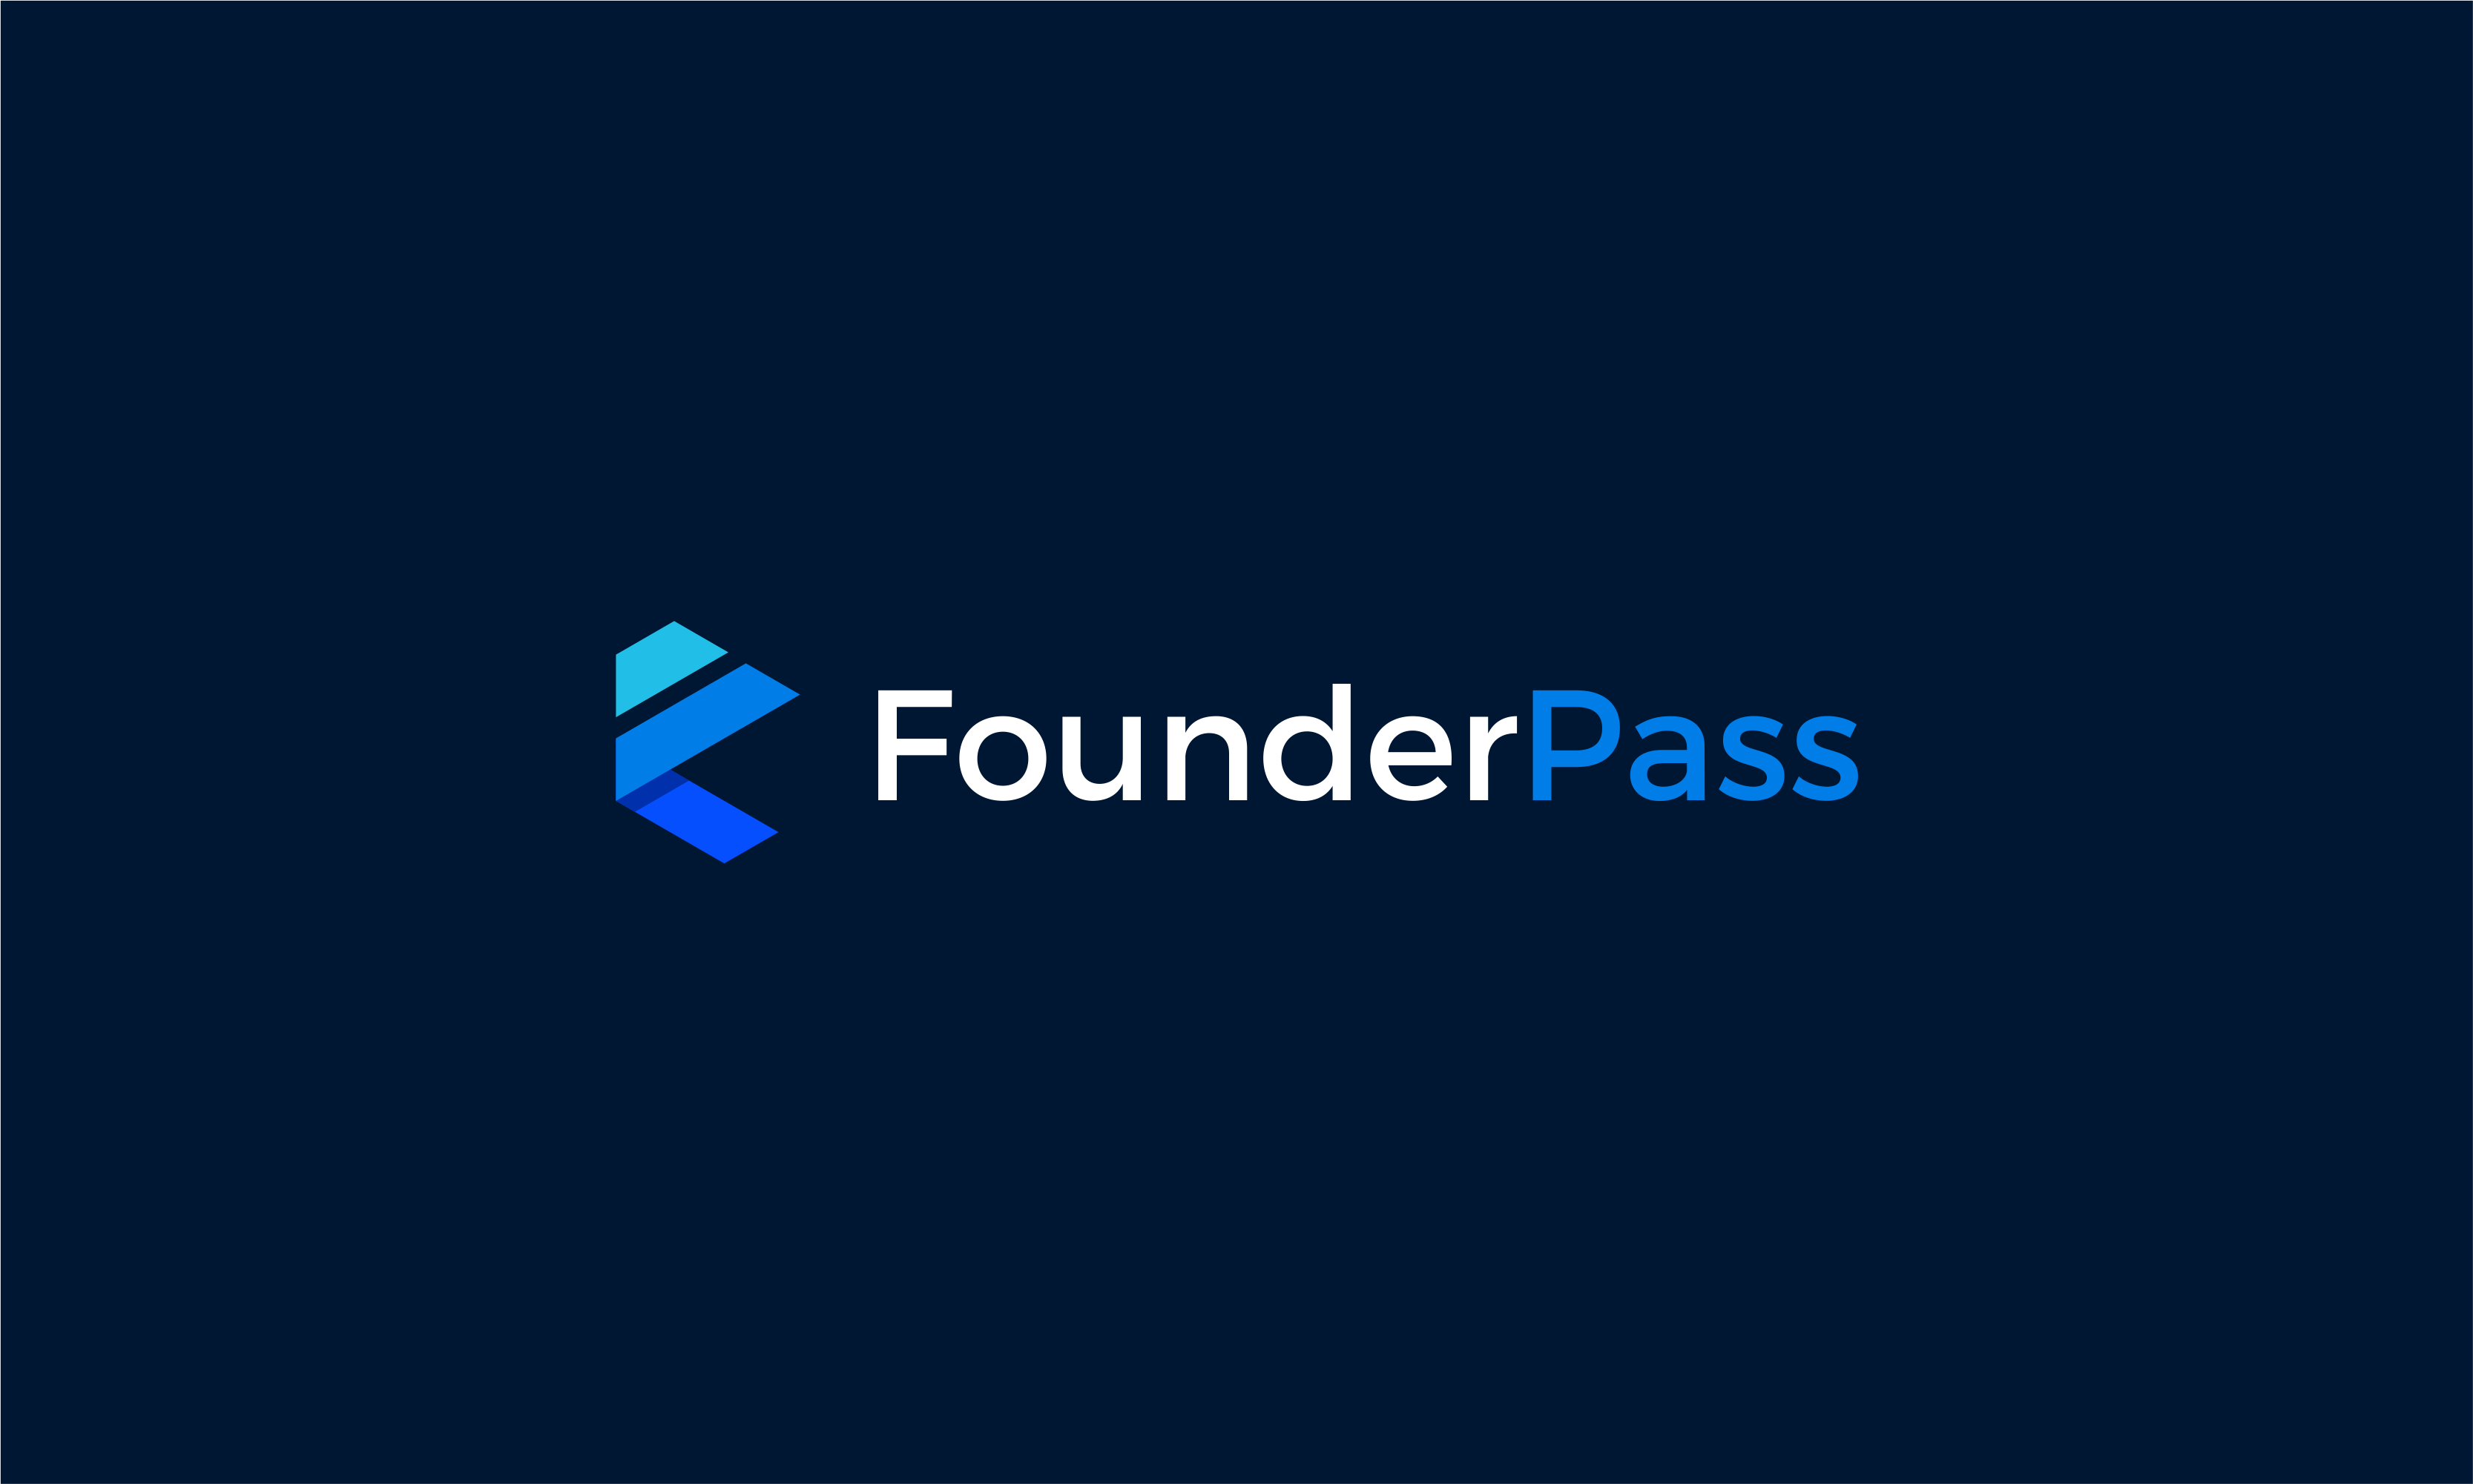 Founderpass